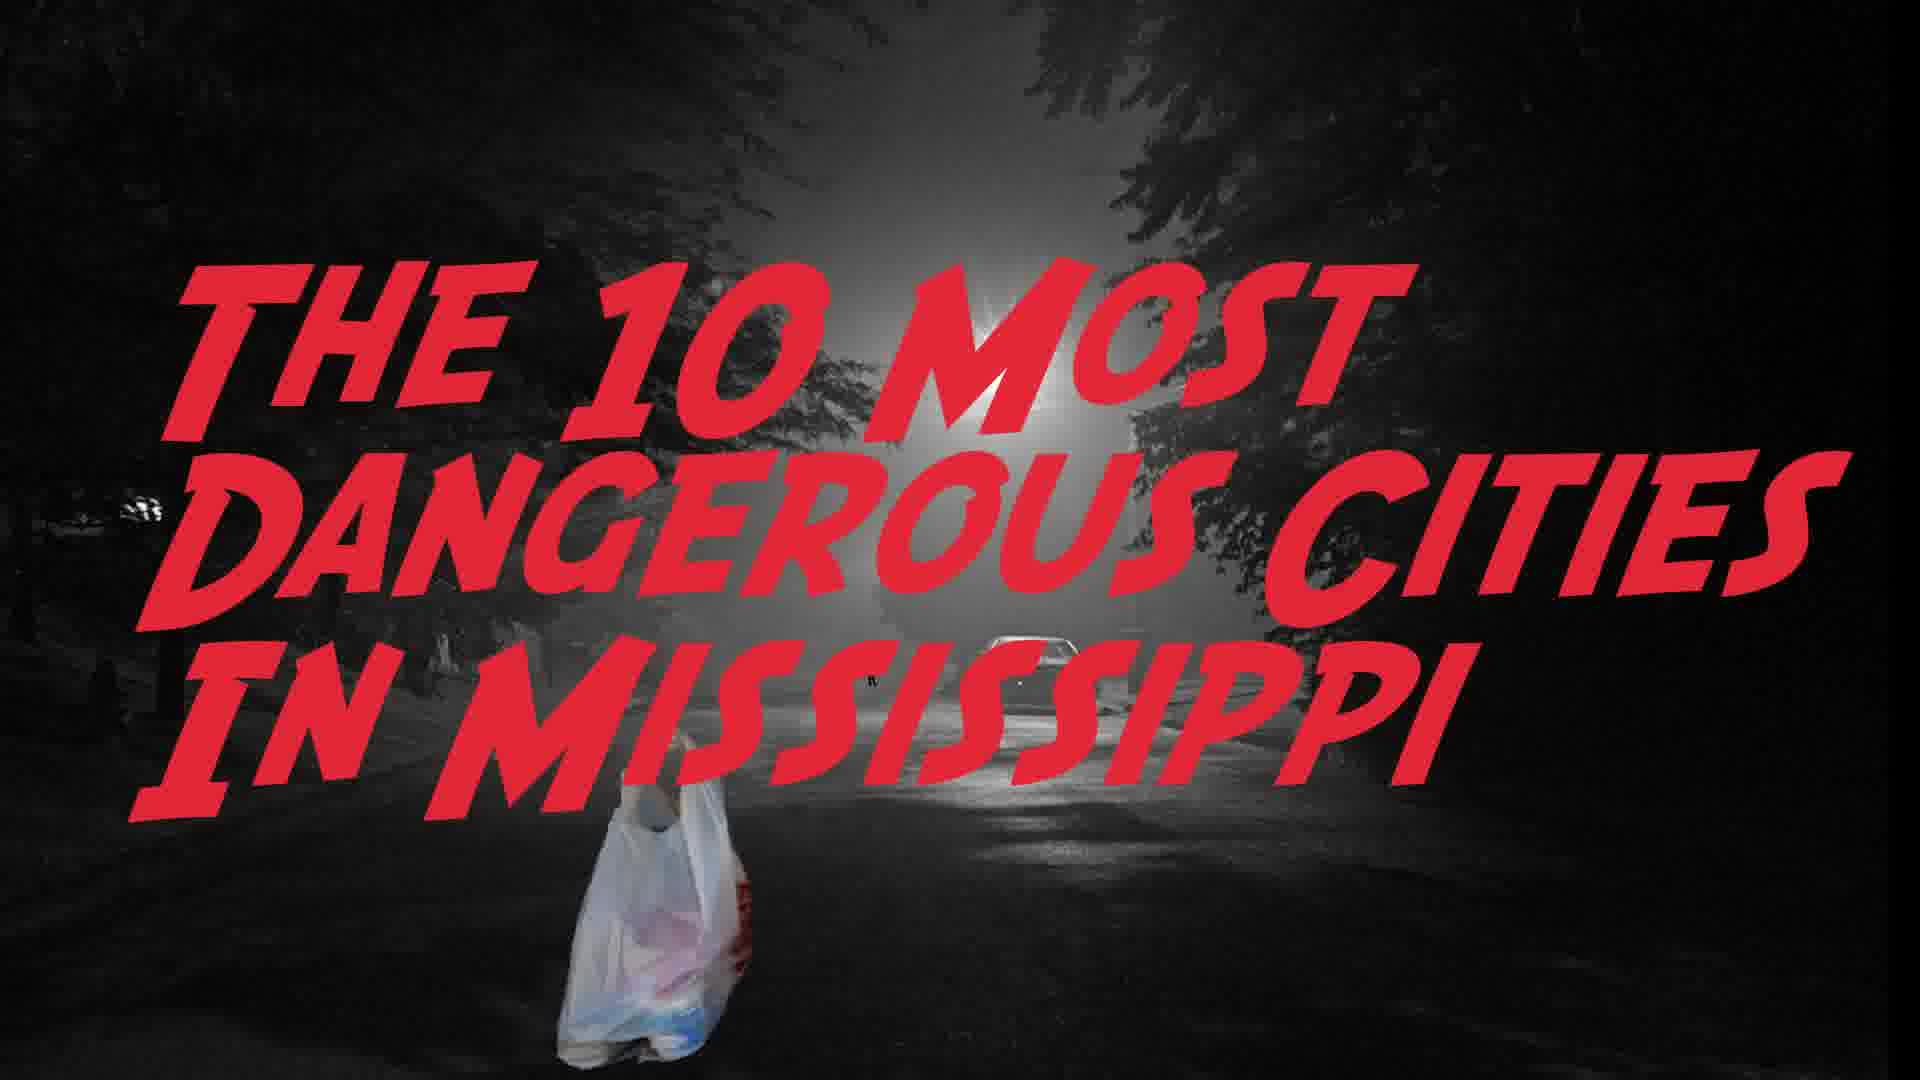 These Are The 10 Most Dangerous Cities In Mississippi For 2019